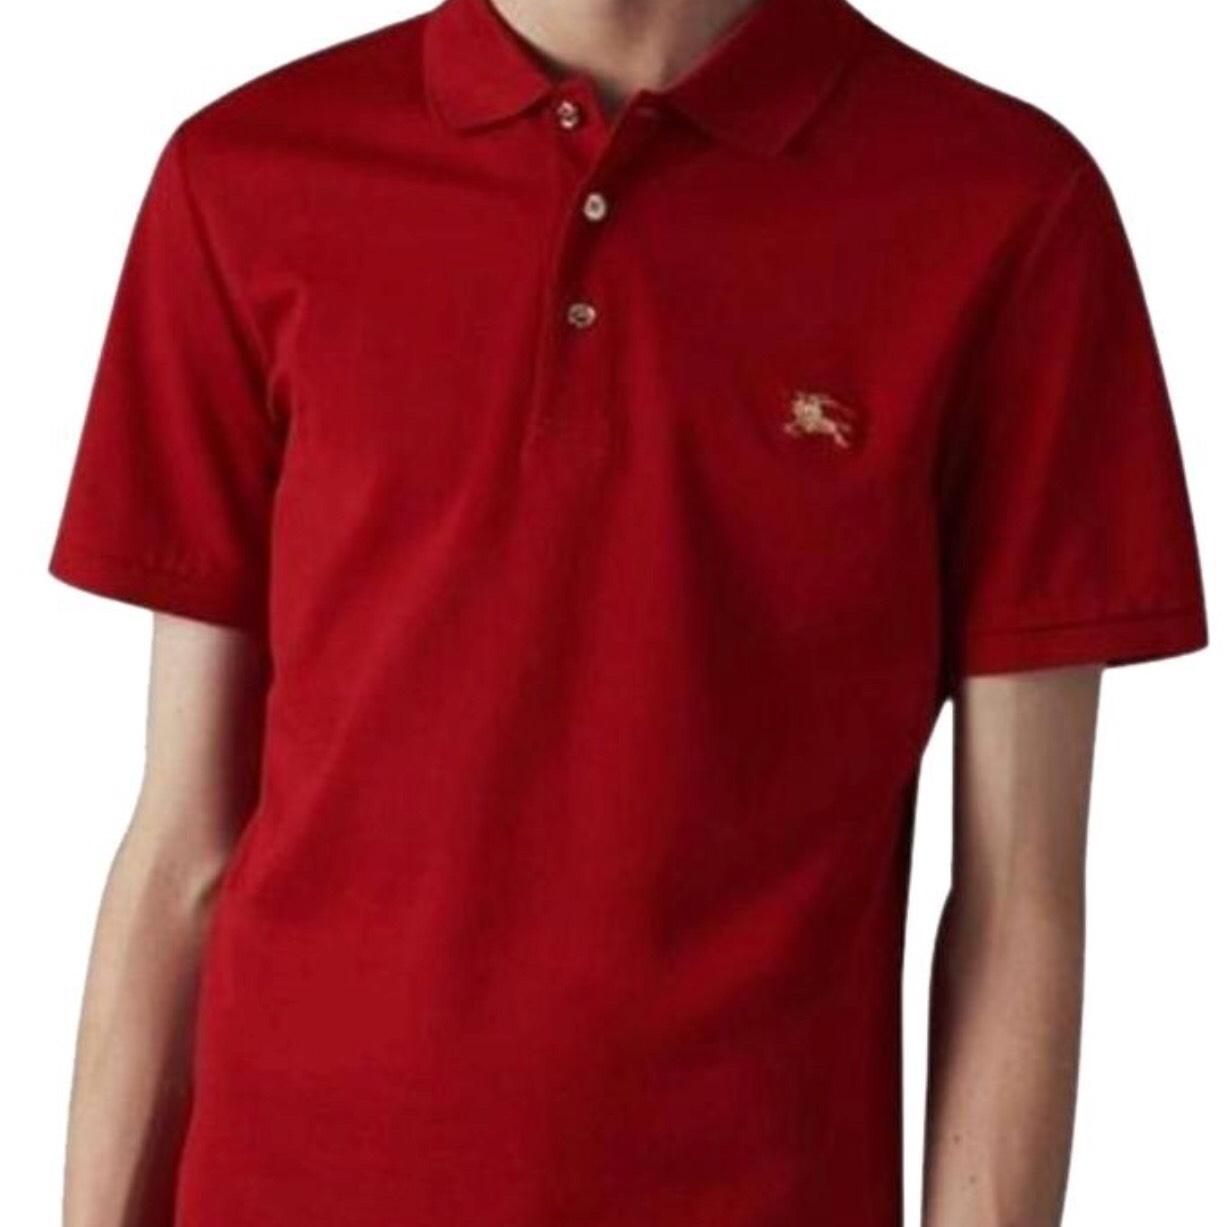 Burberry Brit Red Shirt Sale Off54 Discounts